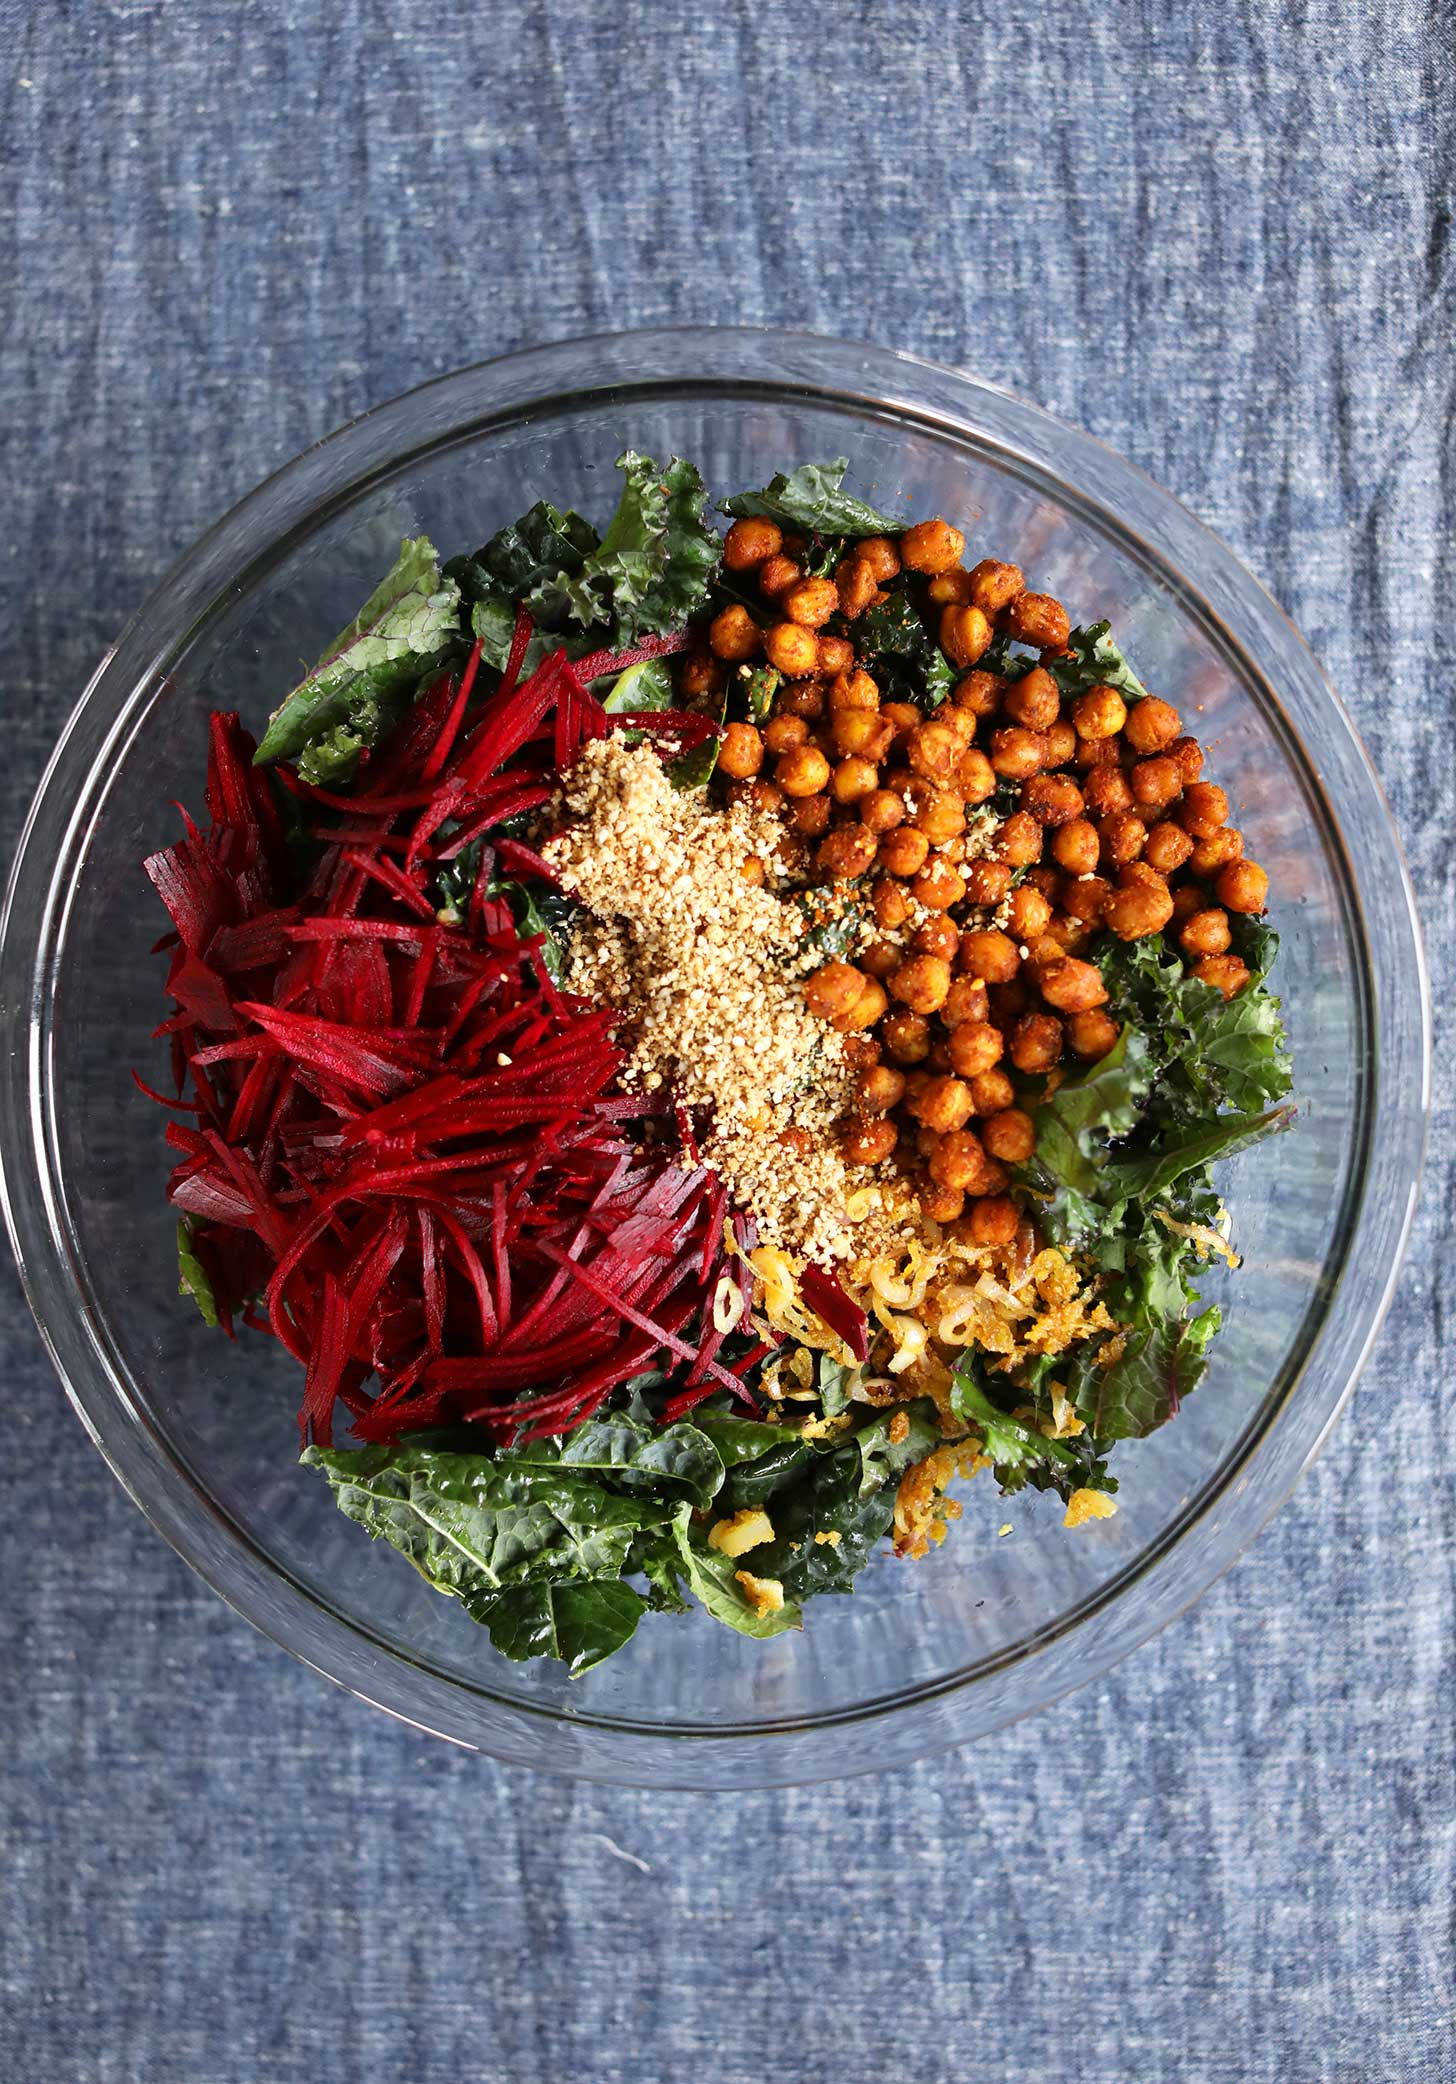 HEALTHY 30 minute Kale Salad with Smoky Chickpeas Beets Dukkah #chickpeas #beets #smoky #vegan #glutenfree #salad #recipe #healthy #minimalistbaker